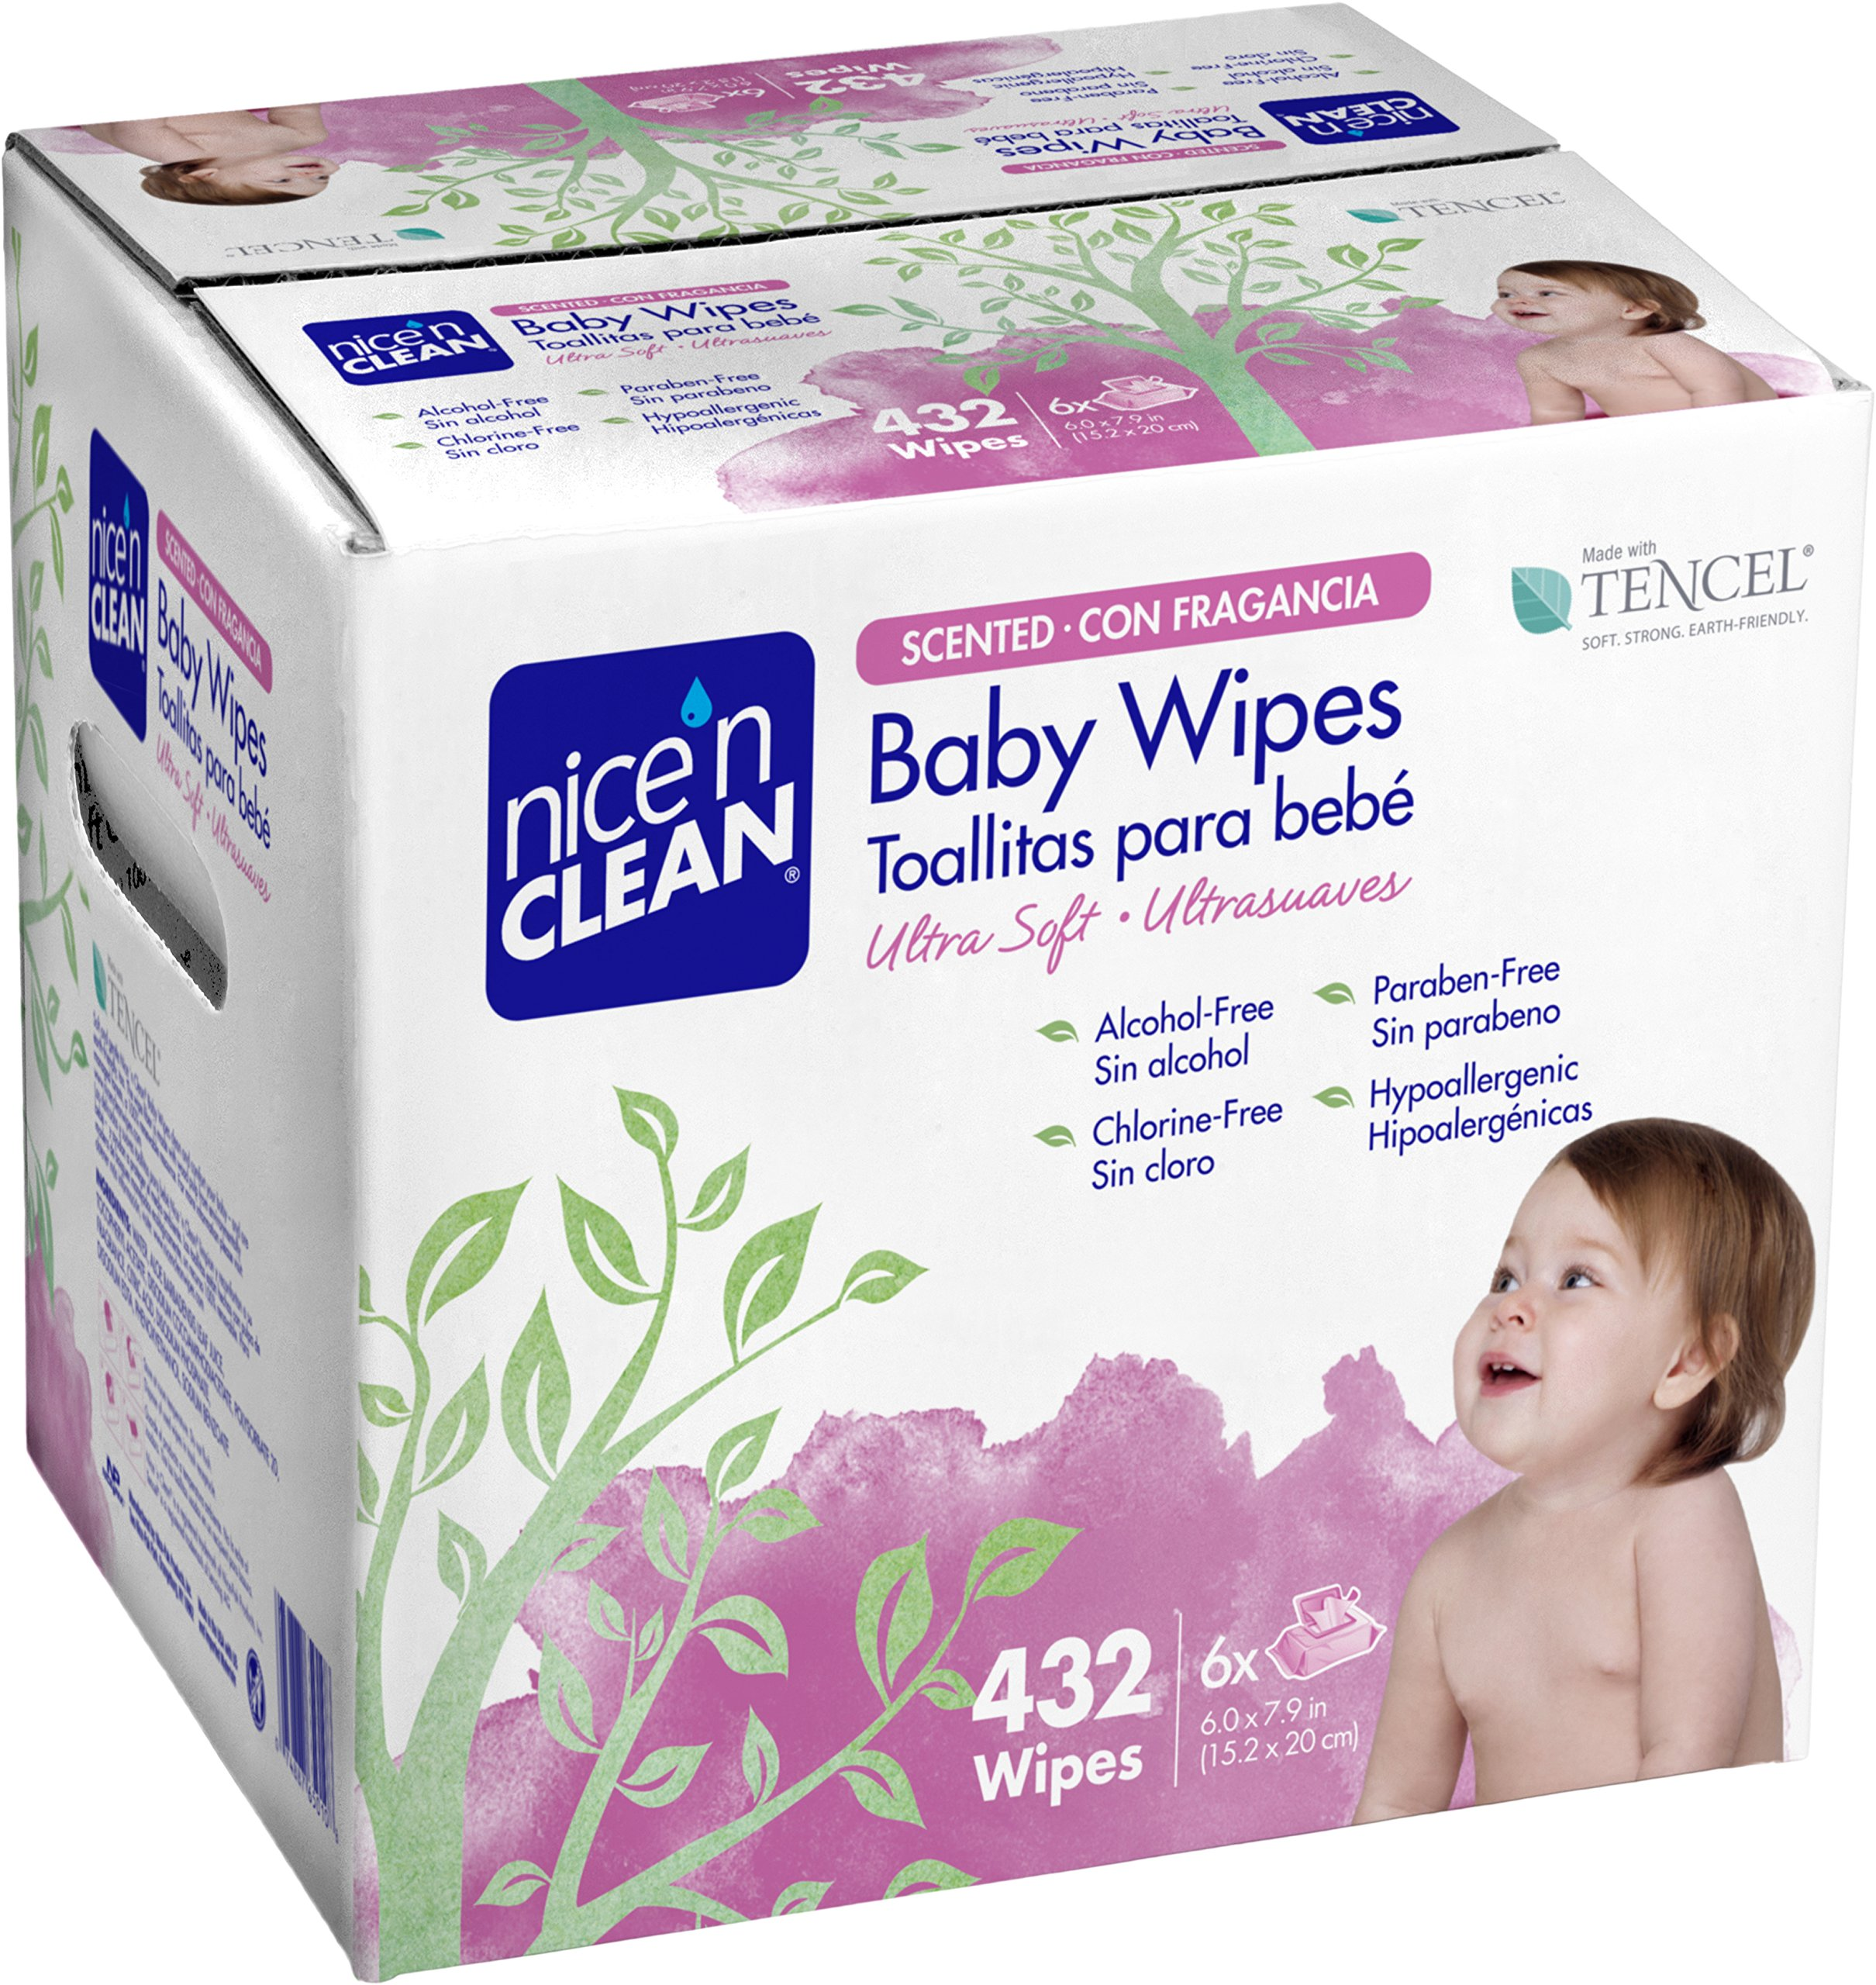 Nice 'n Clean Baby Wipes, Scented, 432 Count